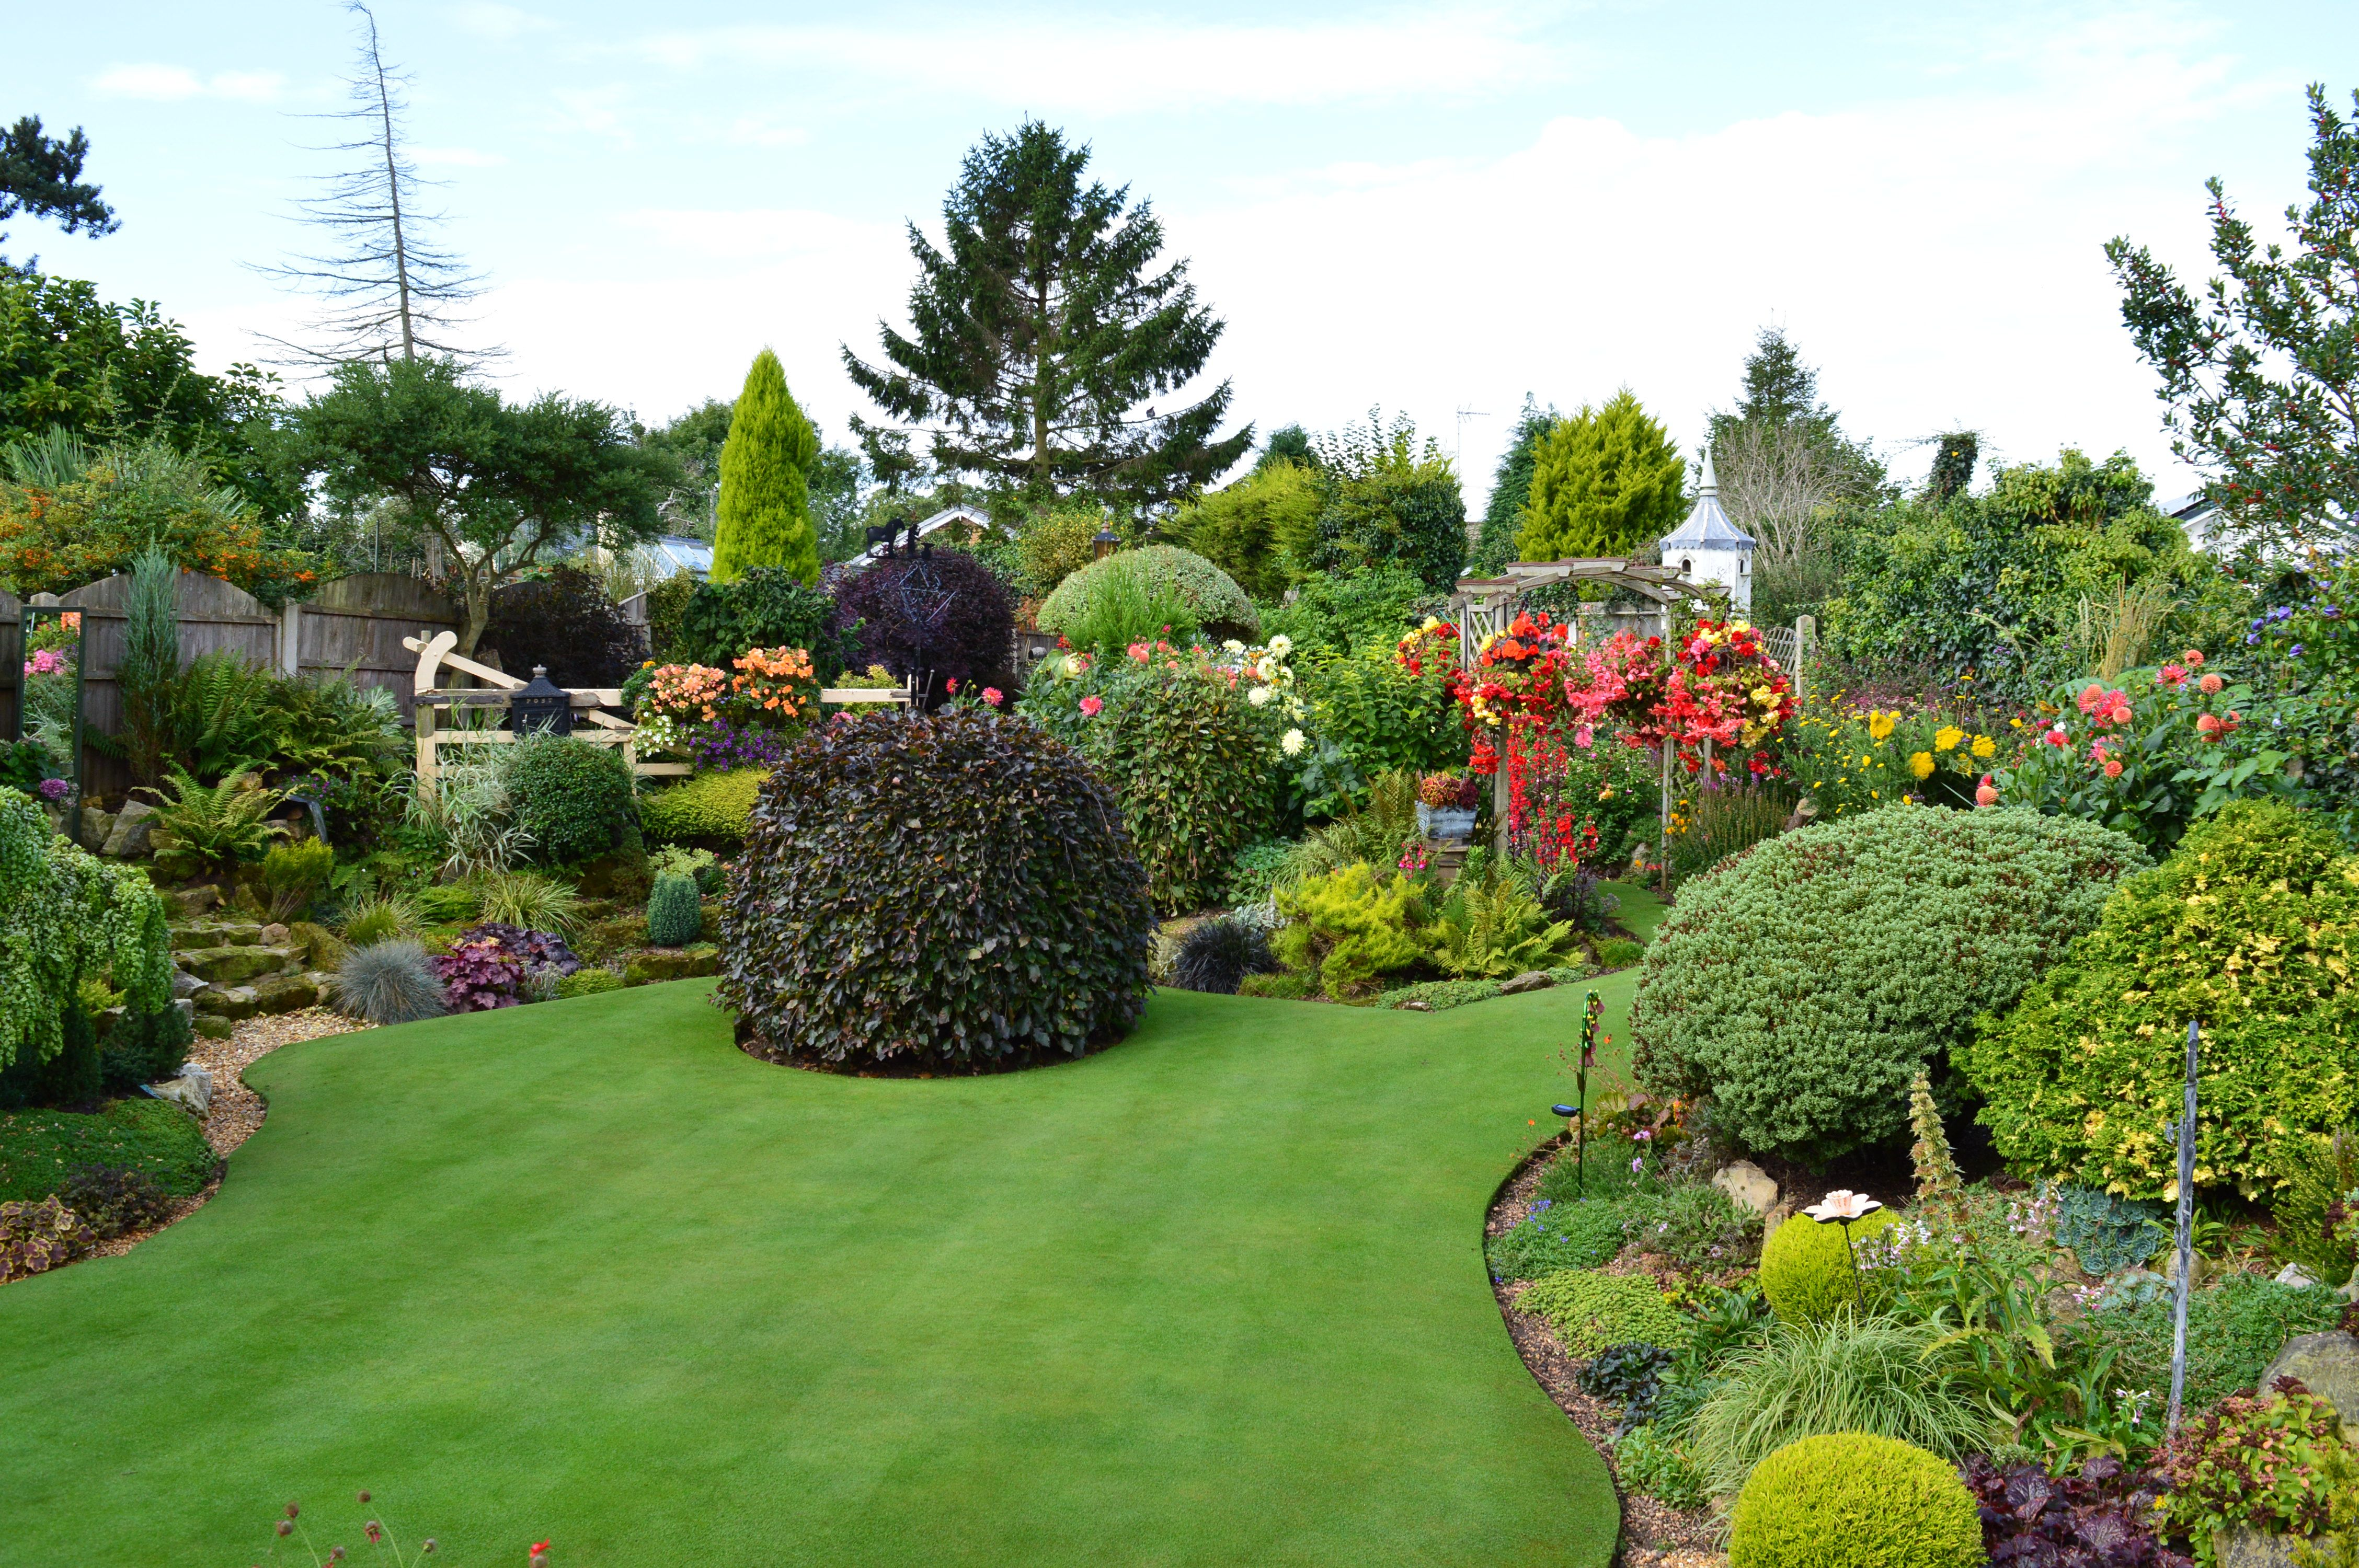 Britains best lawn with images lawn lawn care plants